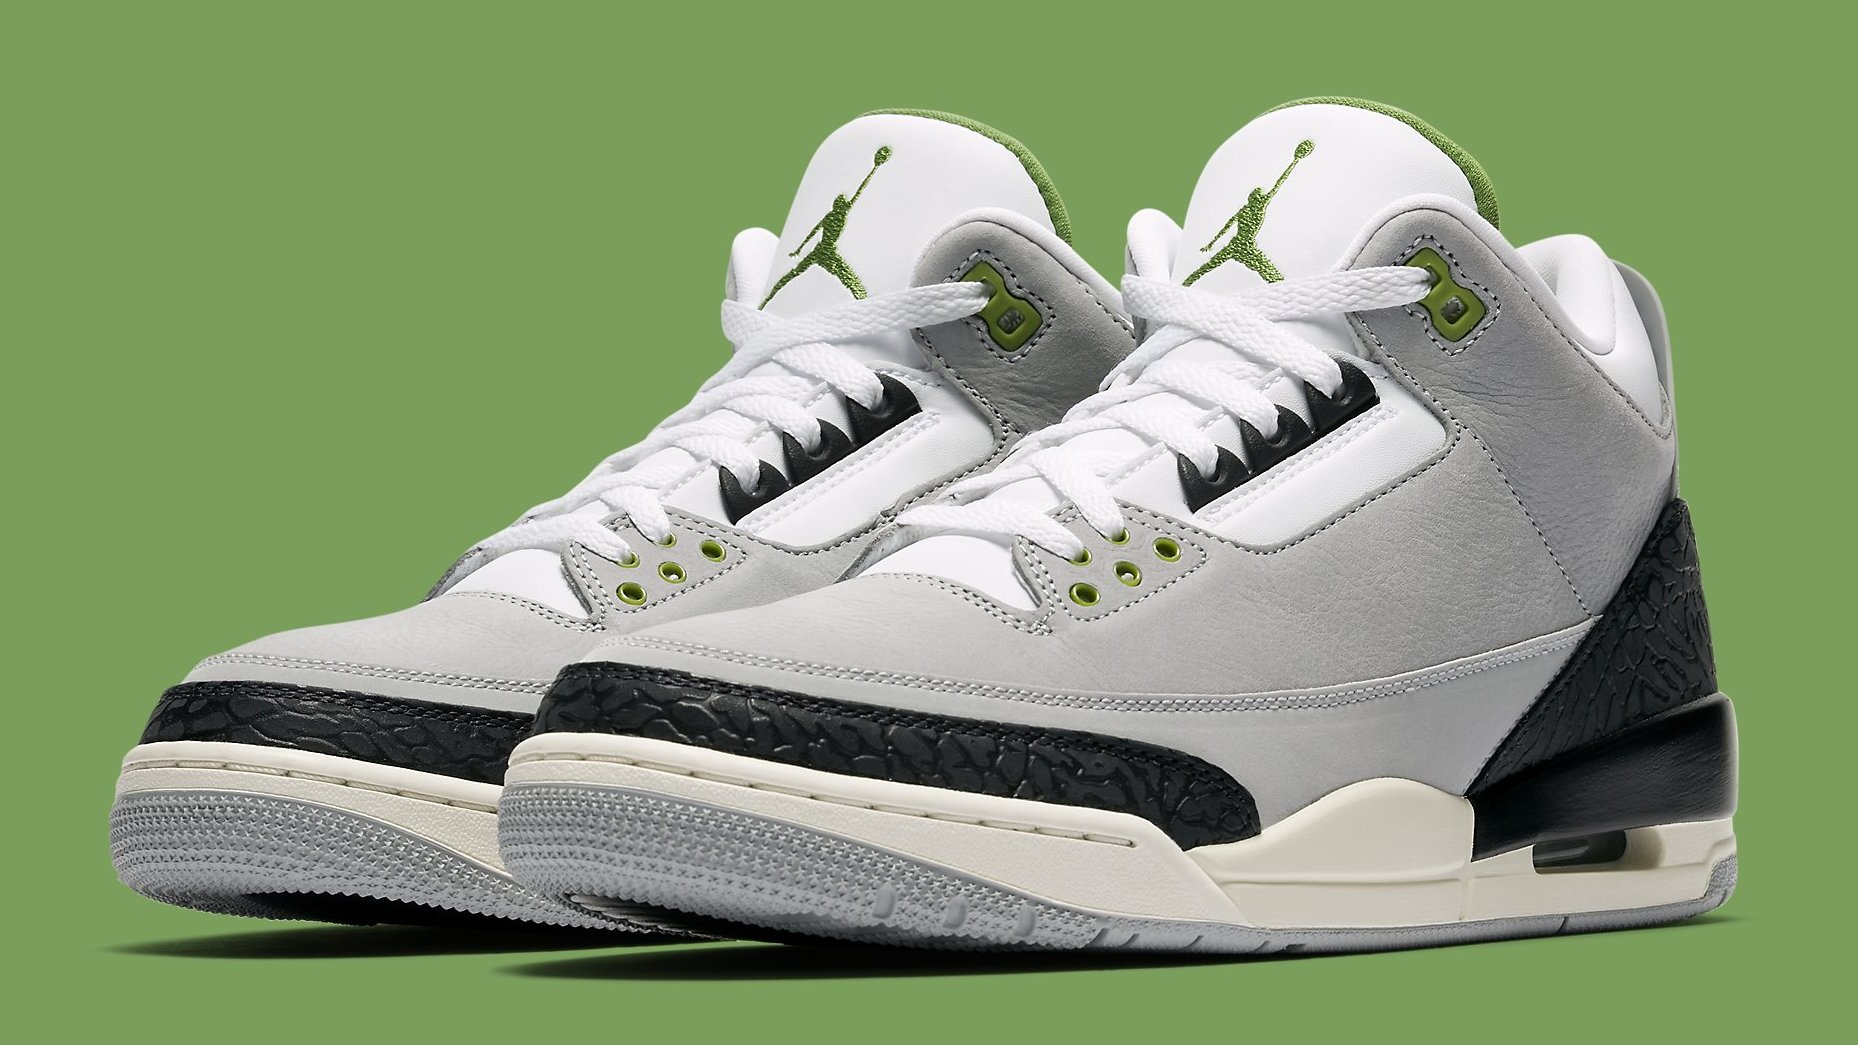 0beffdb63d4 New Release Date for the 'Chlorophyll' Air Jordan 3. Inspired by Tinker  Hatfield's ...